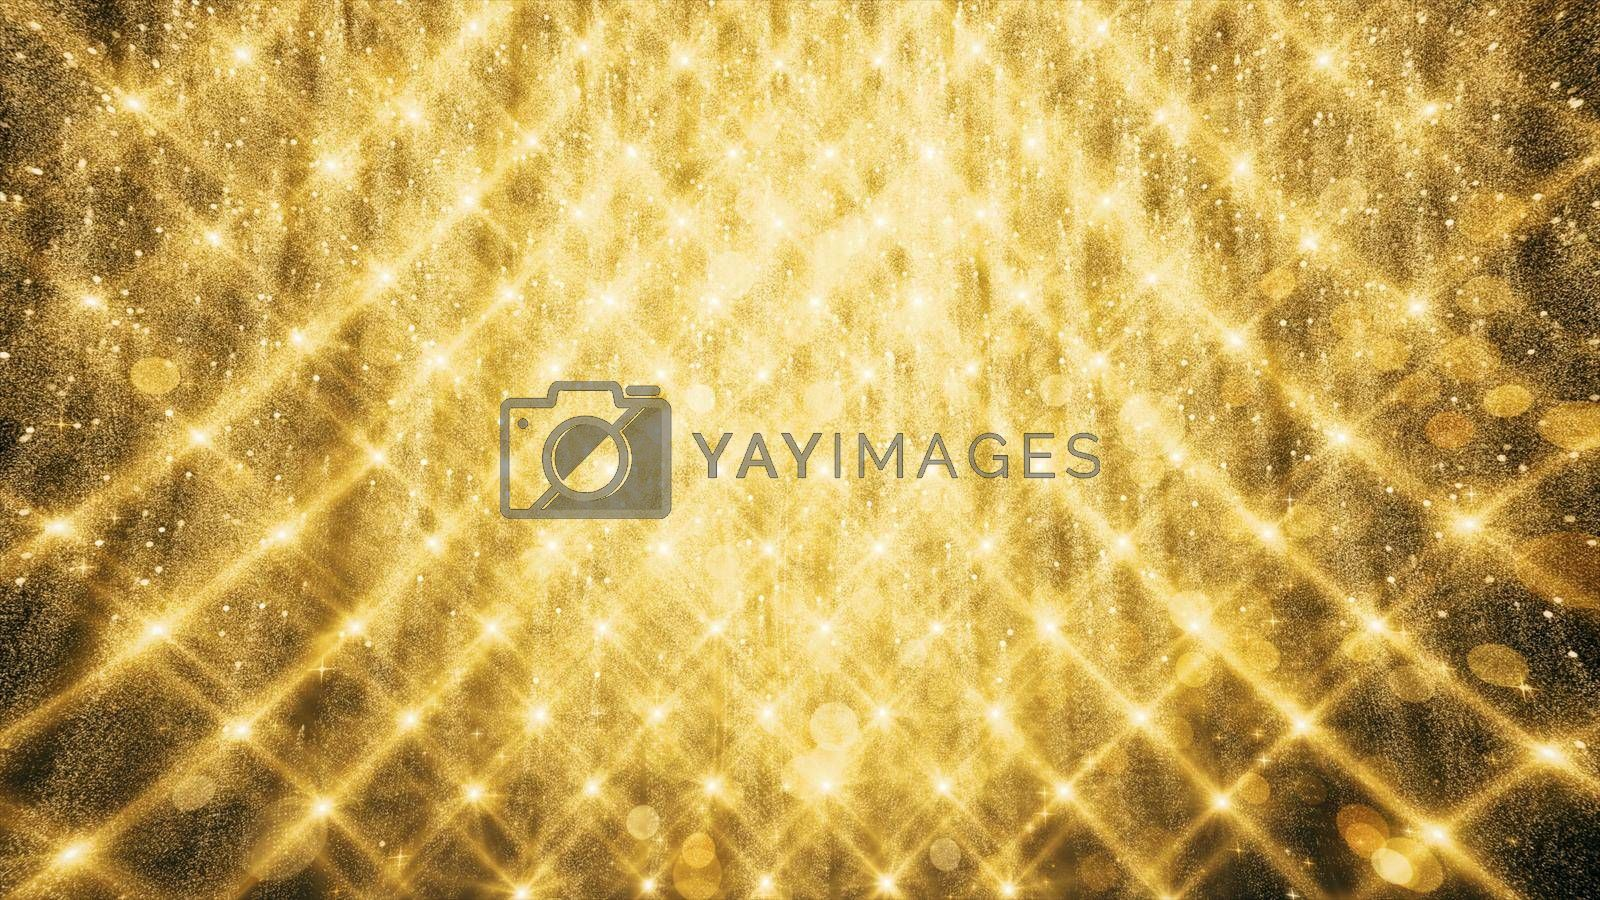 3D illustration Background for advertising and wallpaper in holiday and celebrate scene. 3D rendering in decorative concept.